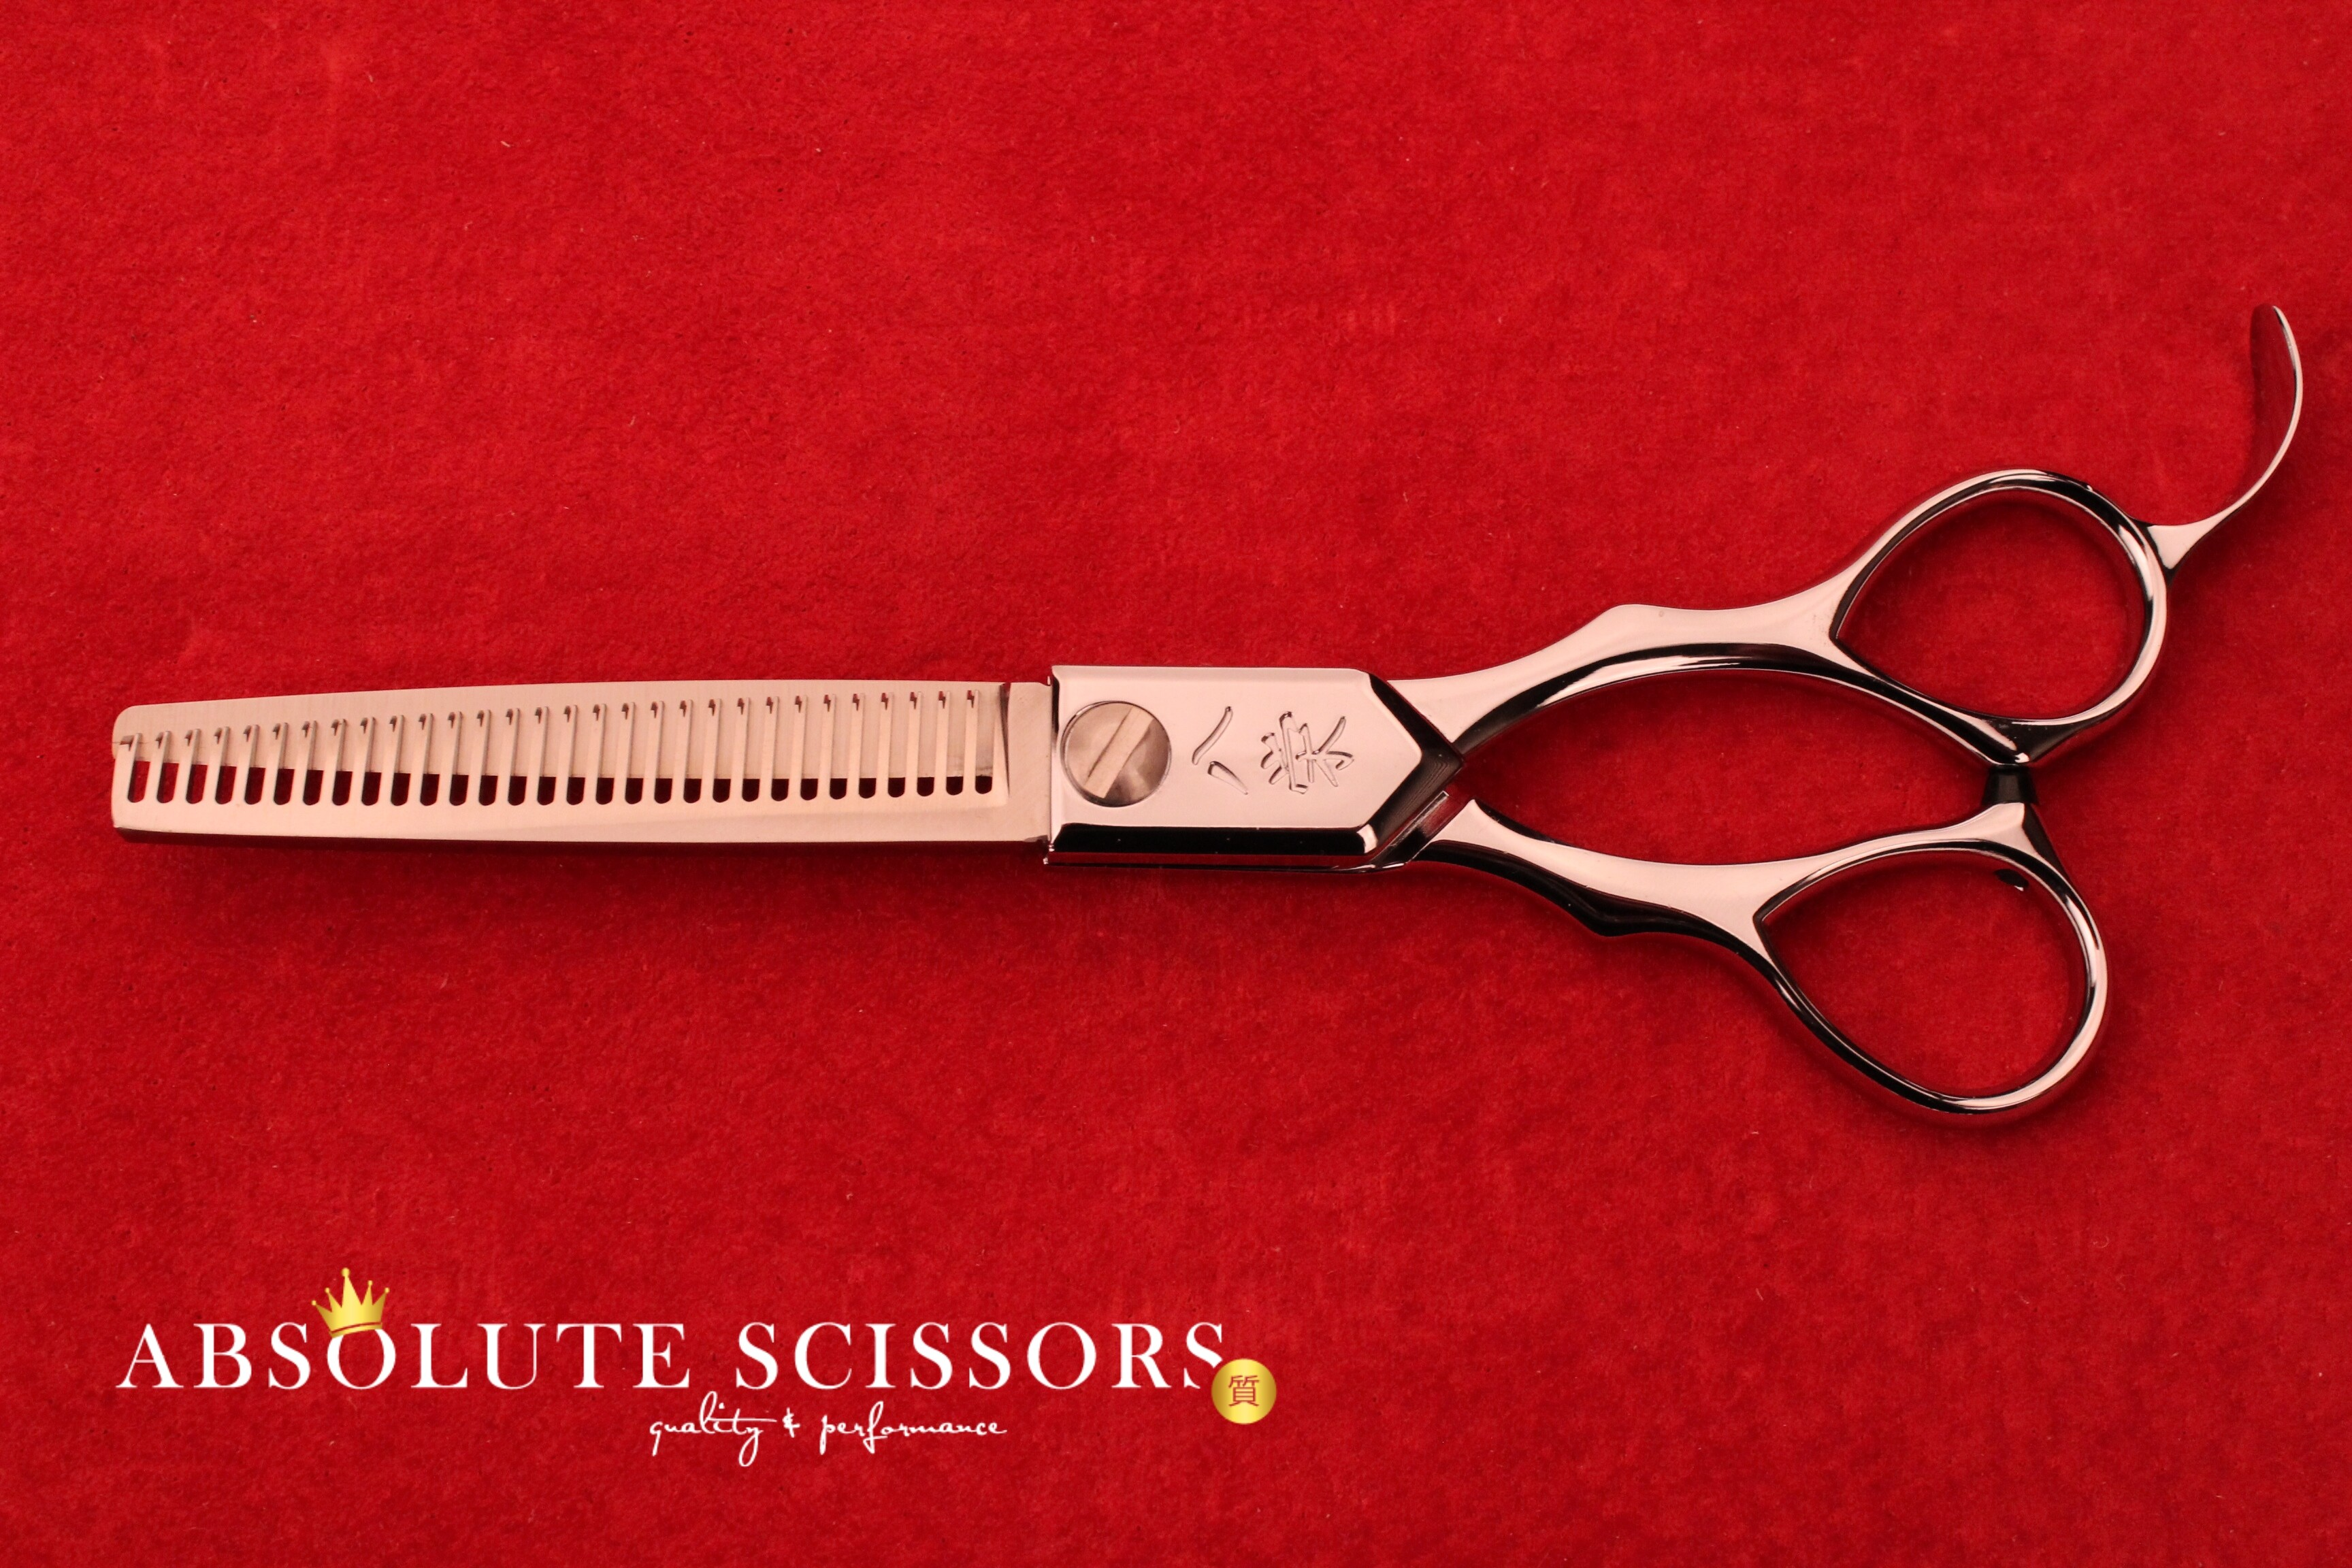 yasaka ys hair scissors 300 inches